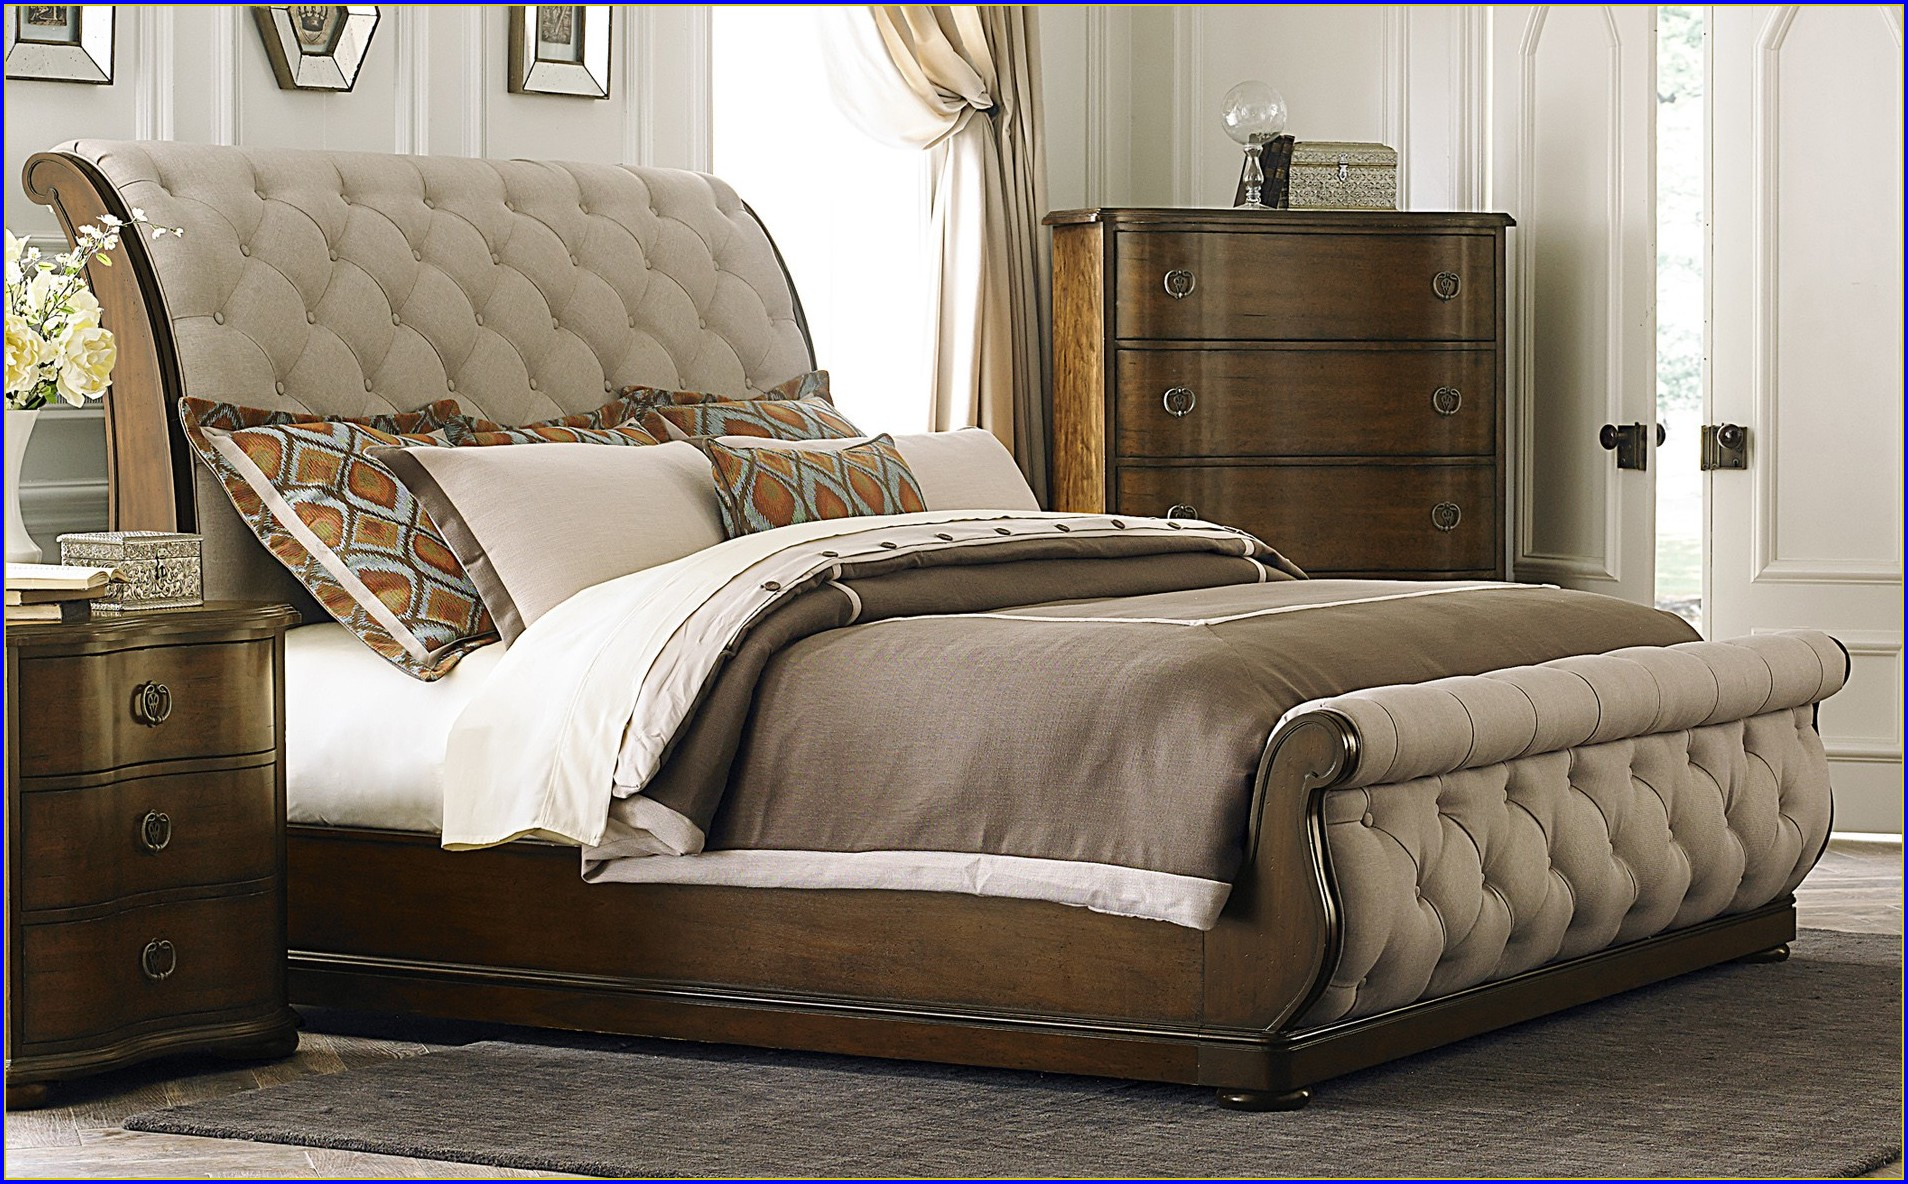 King Sleigh Bed With Leather Headboard Bedroom Home